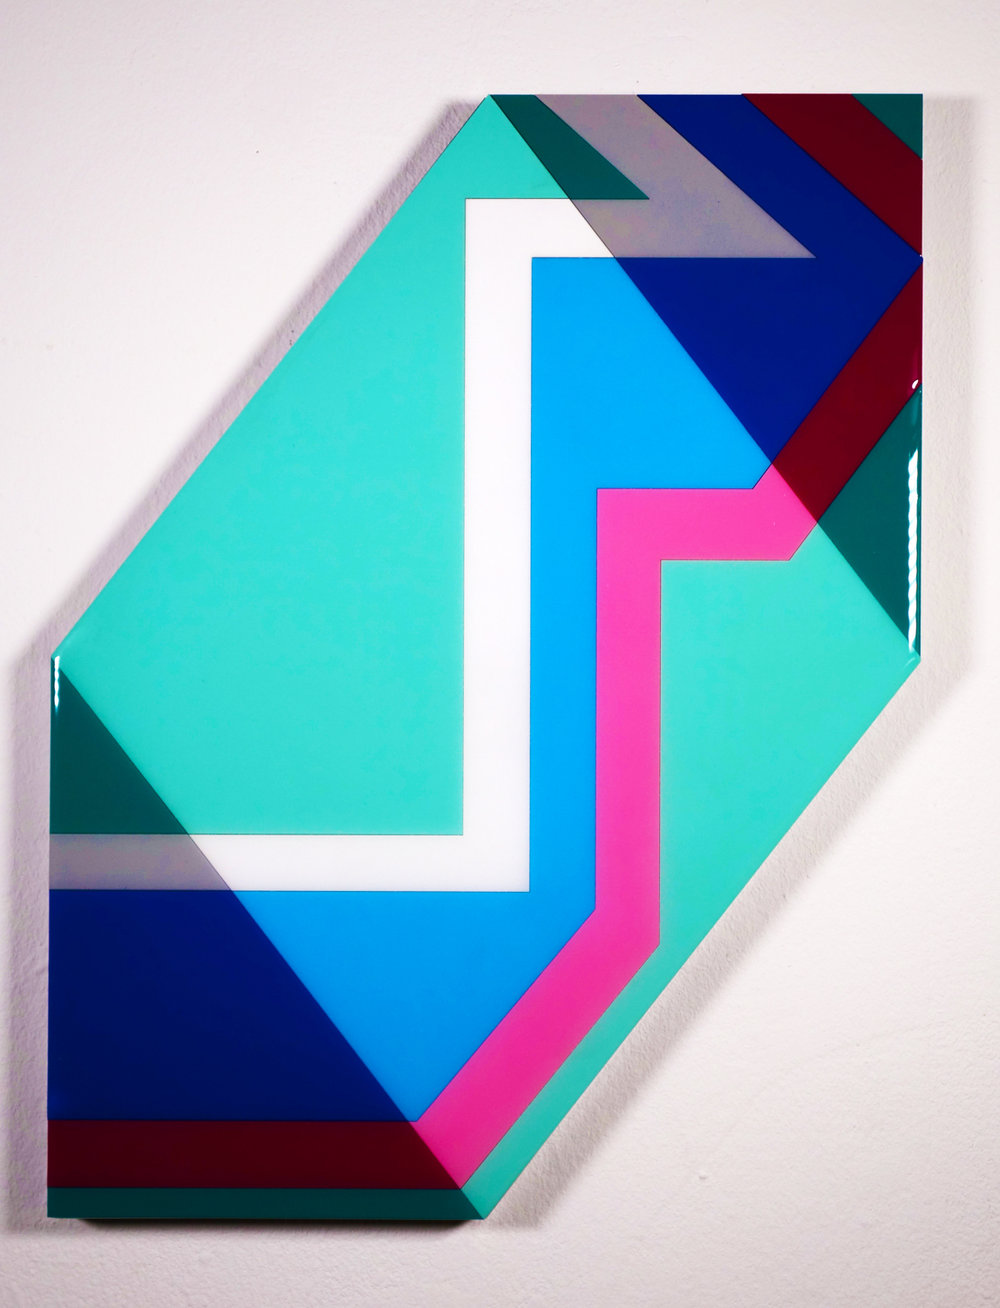 "Tavar Zawacki  DIAMOND ALIGNMENT - MINT  (2018) Laser cut wood panels, acrylic paint, wood nails, industrial UV protective resin 17.75"" x 23"" x 1.5""  INQUIRE"